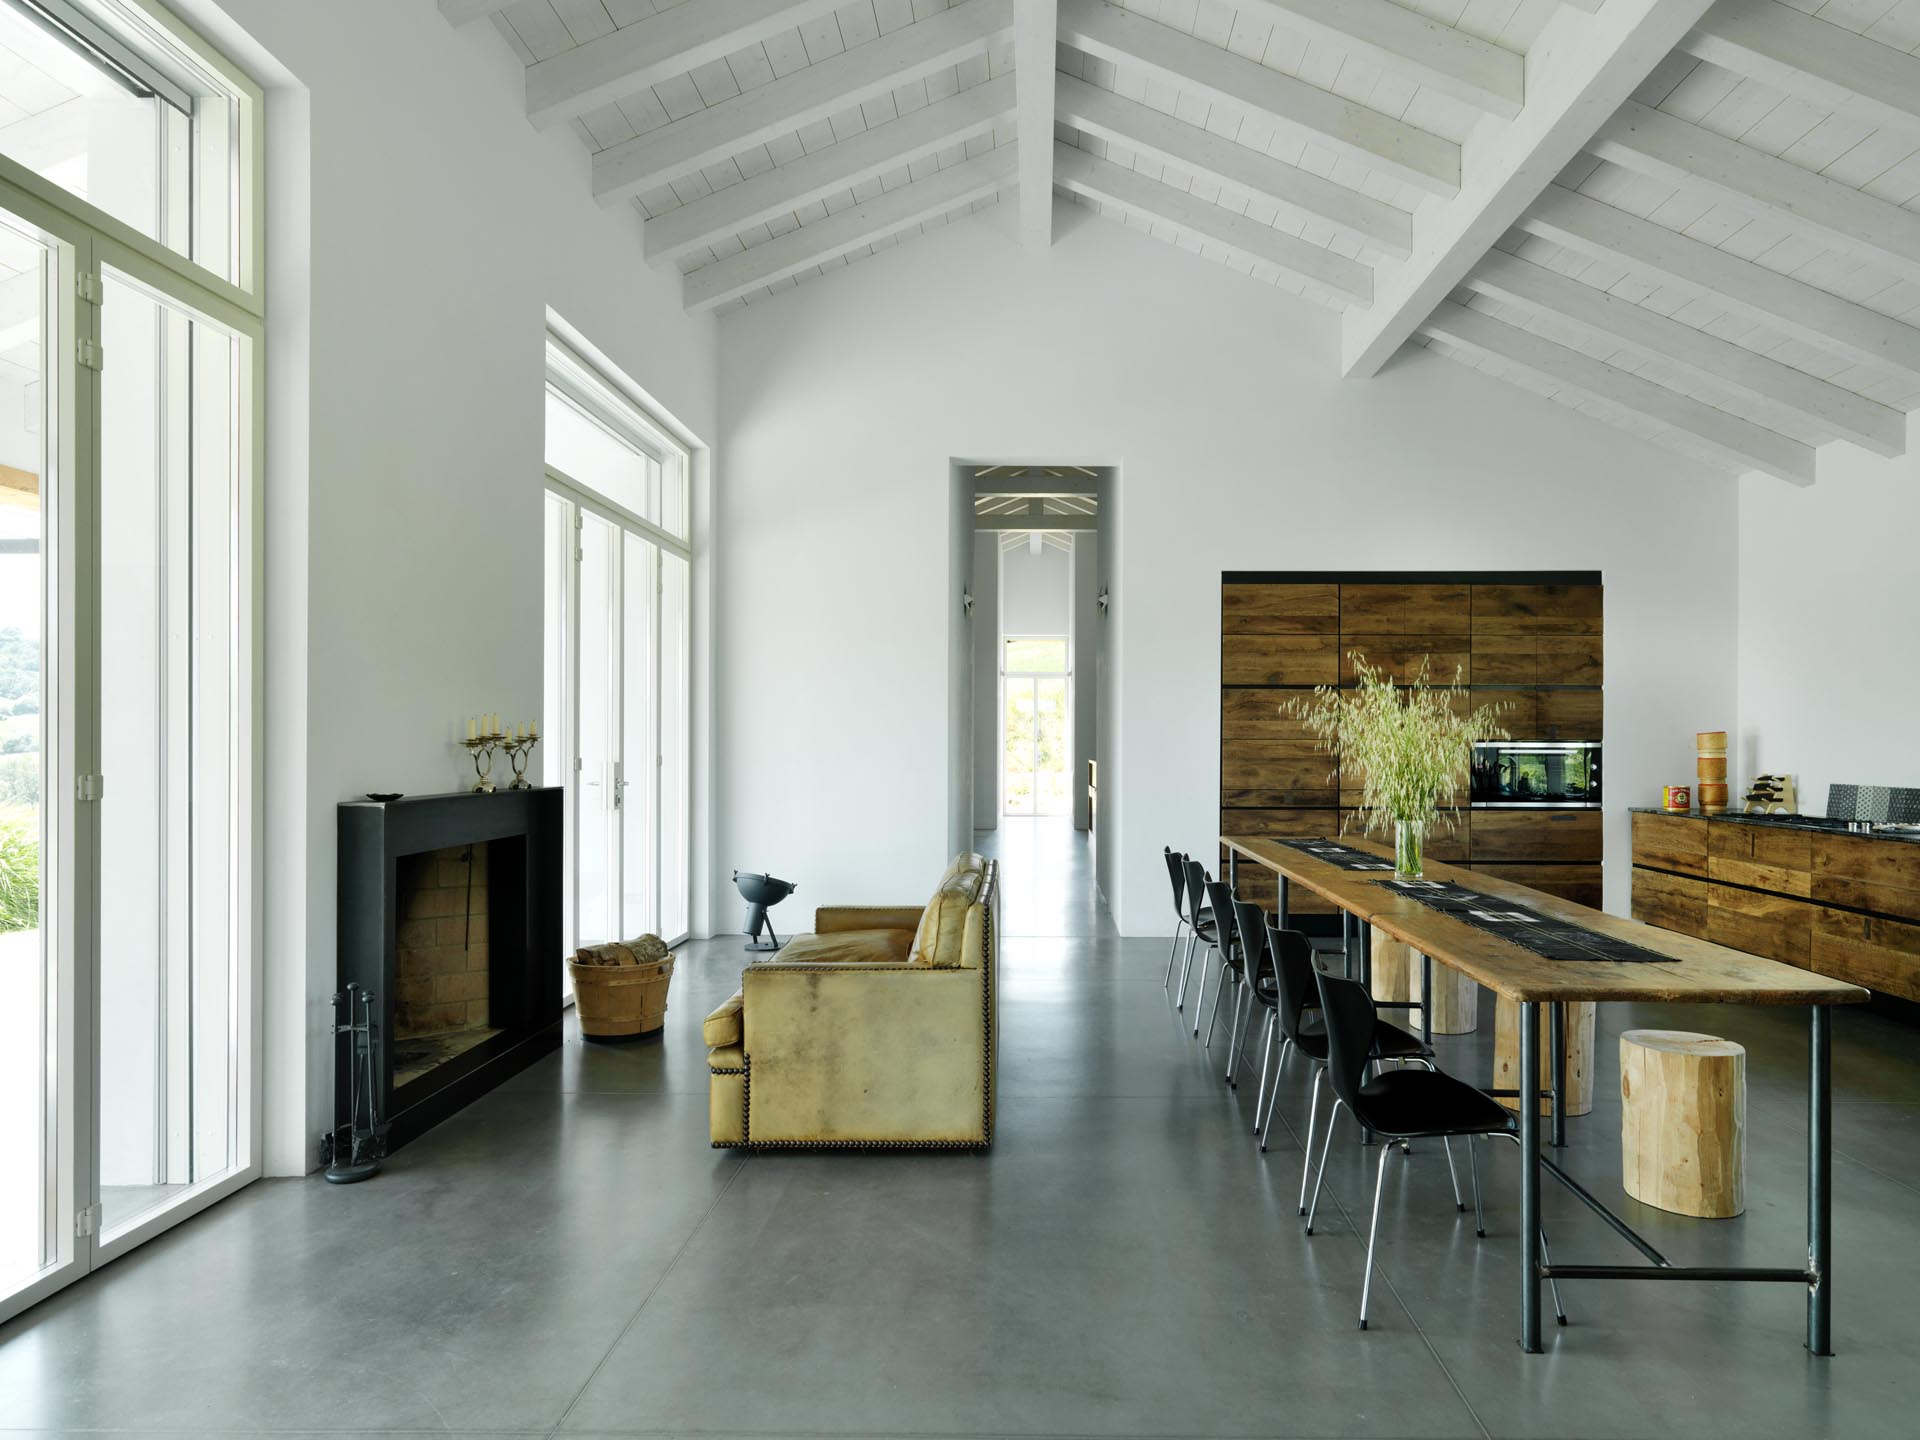 The interior finishes of this modern country house use natural materials to create a minimalist space, similar to that of an art gallery.